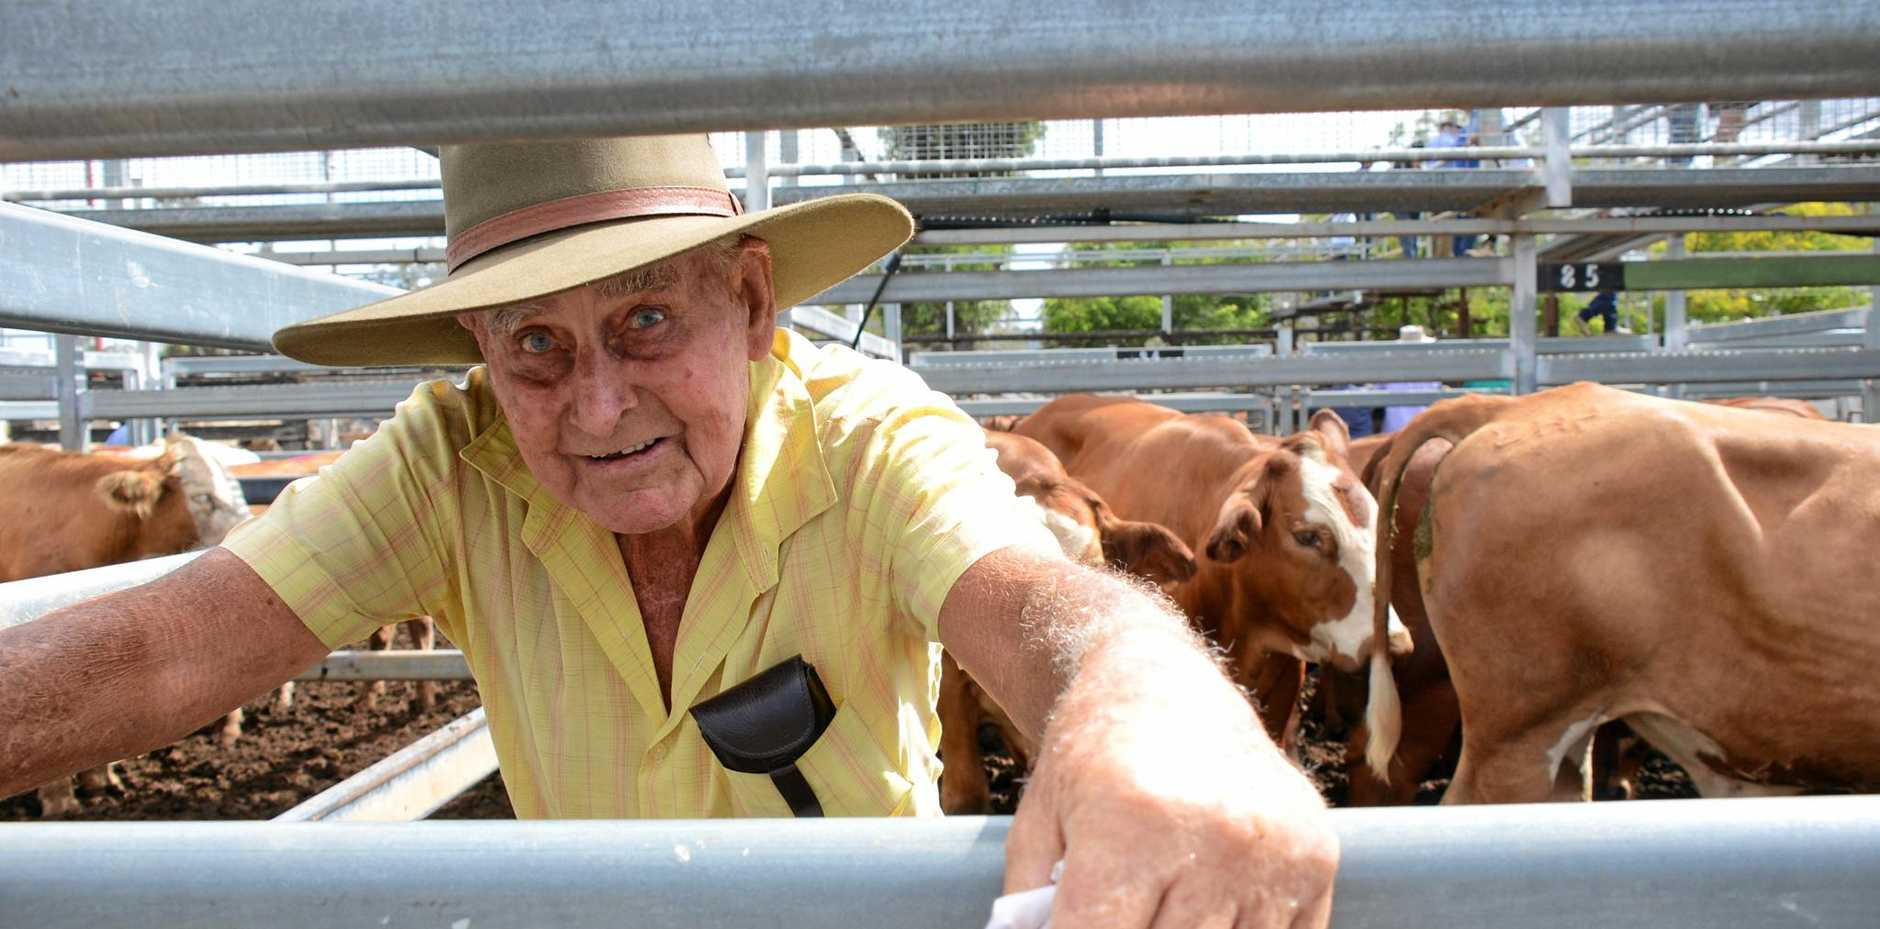 BIG BUCKS: Stan Gscheidle has been farming for over 60 years and got he's best price on record at the Murgon Cattle Sale on Tuesday.